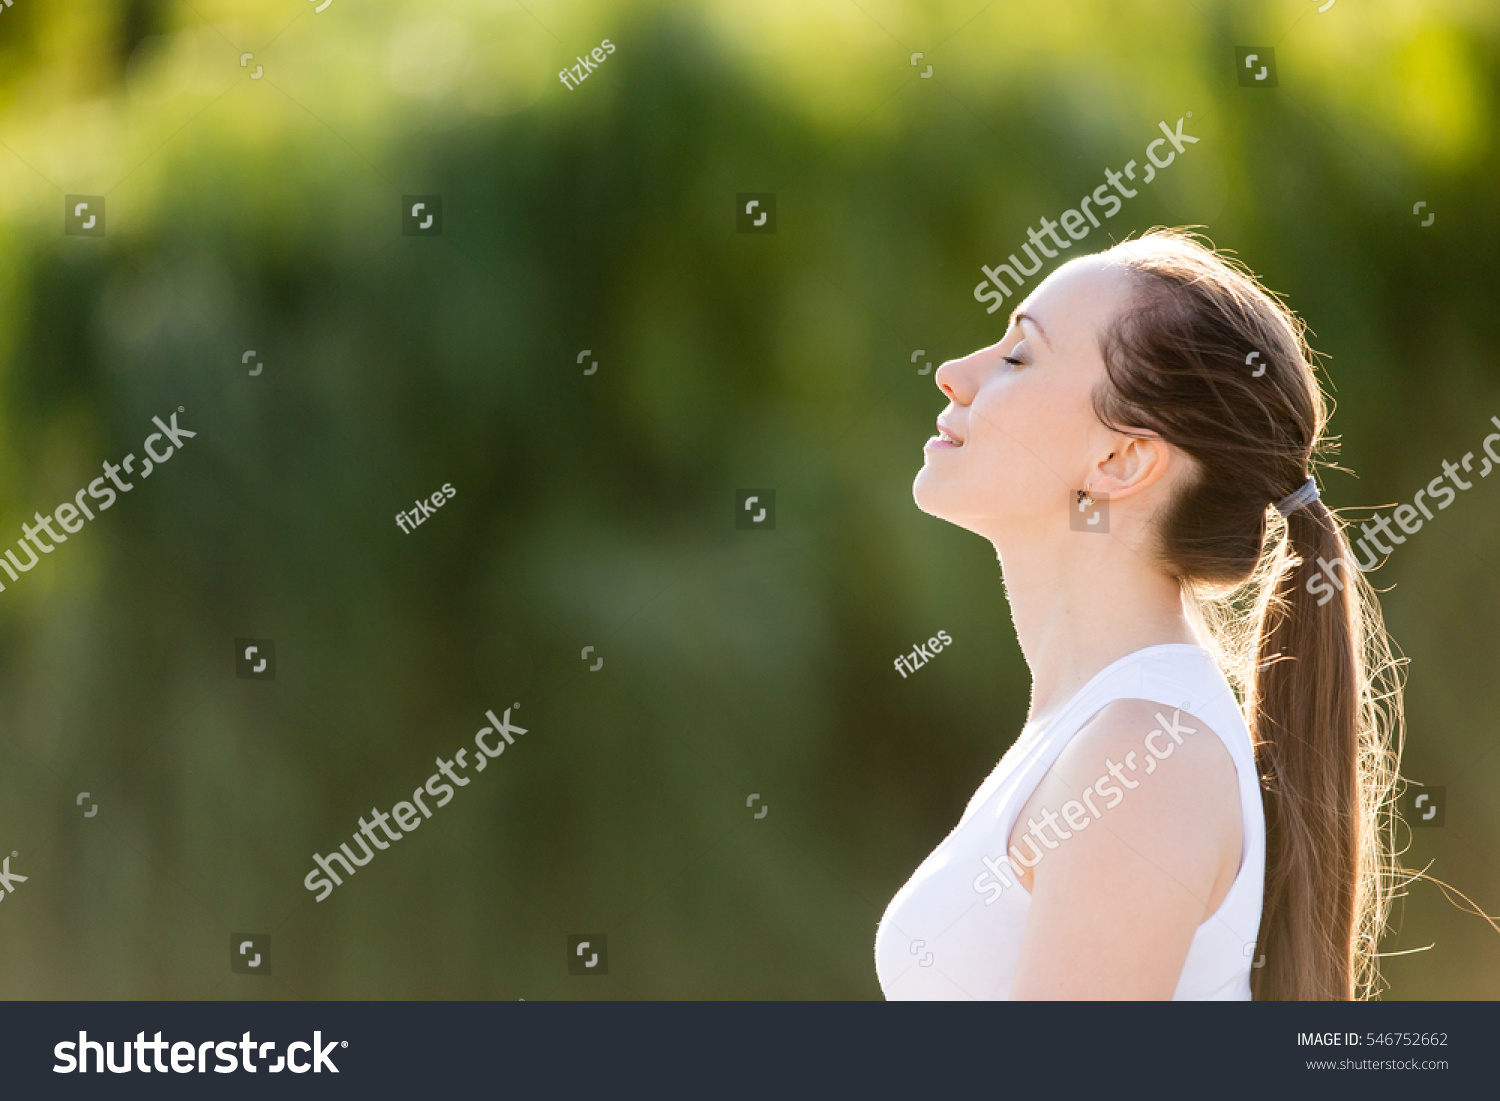 Portrait of beautiful smiling young woman enjoying yoga, relaxing, feeling alive, breathing fresh air, got freedom from work or relations, calm and dreaming with closed eyes, in green park, copy space #546752662